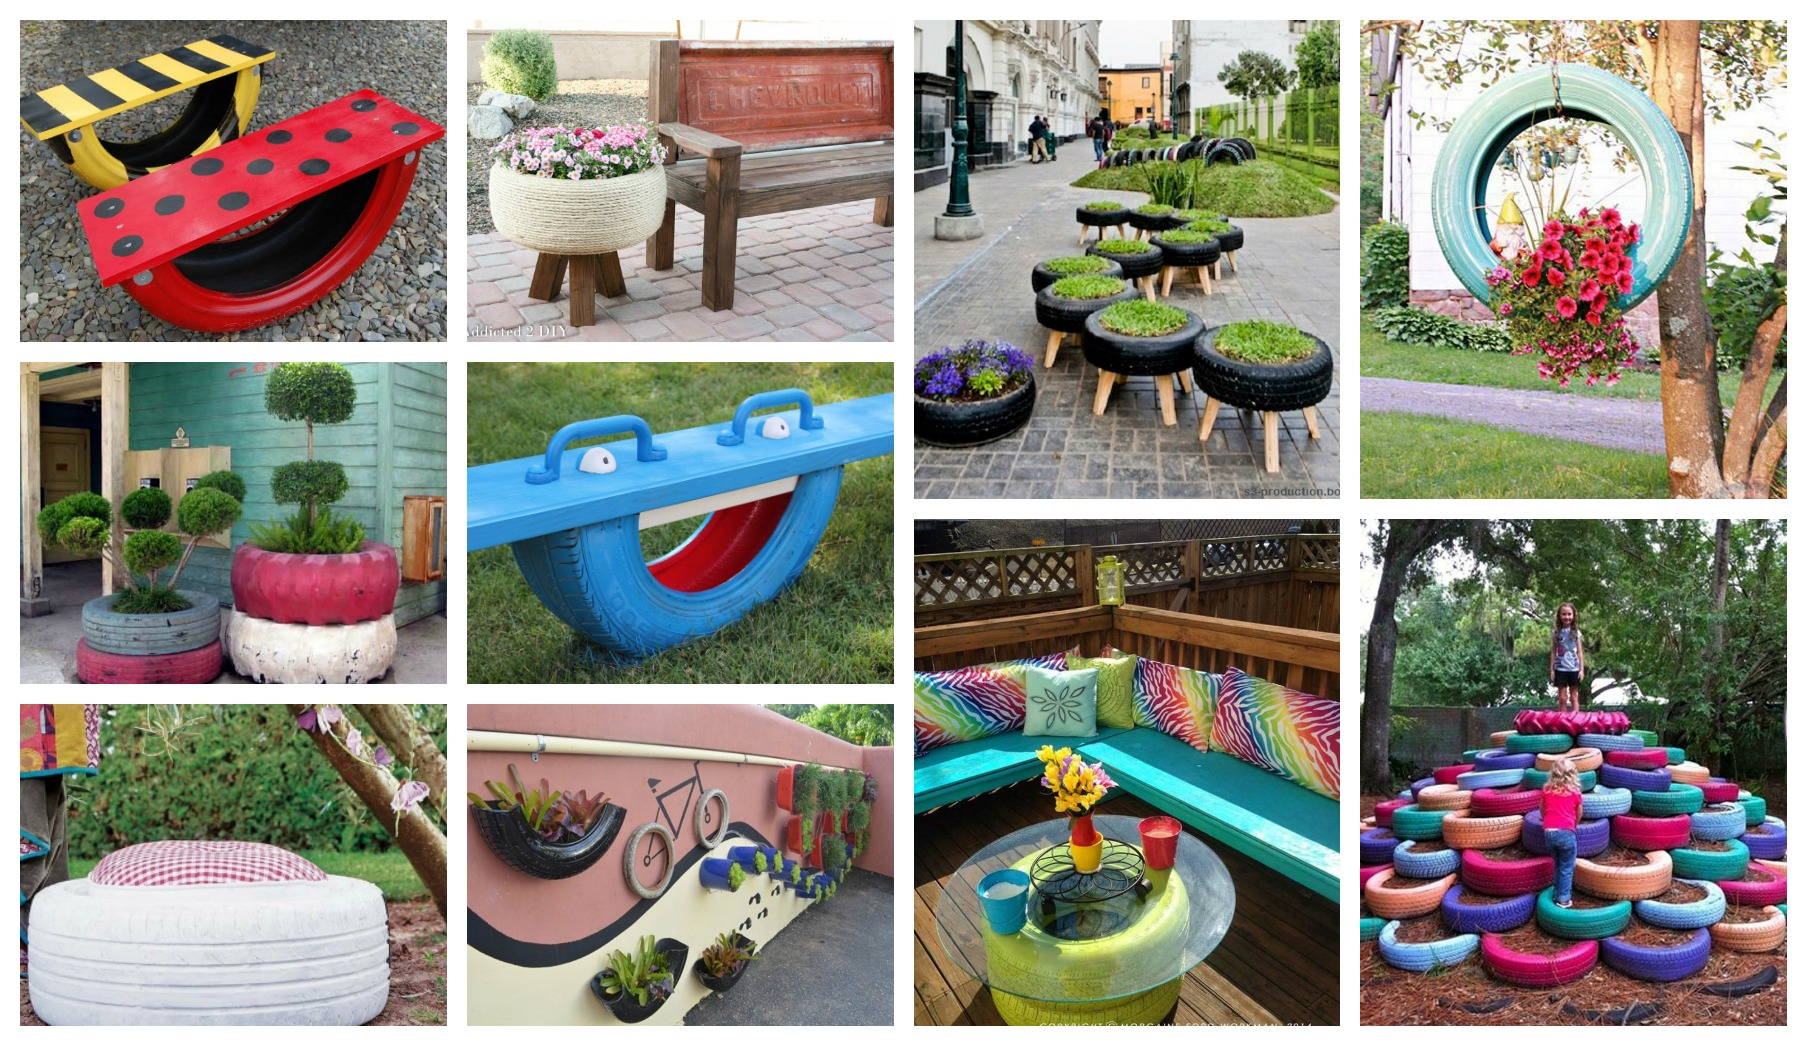 How To Decorate Your Yard With Tires In A Fantastic Way